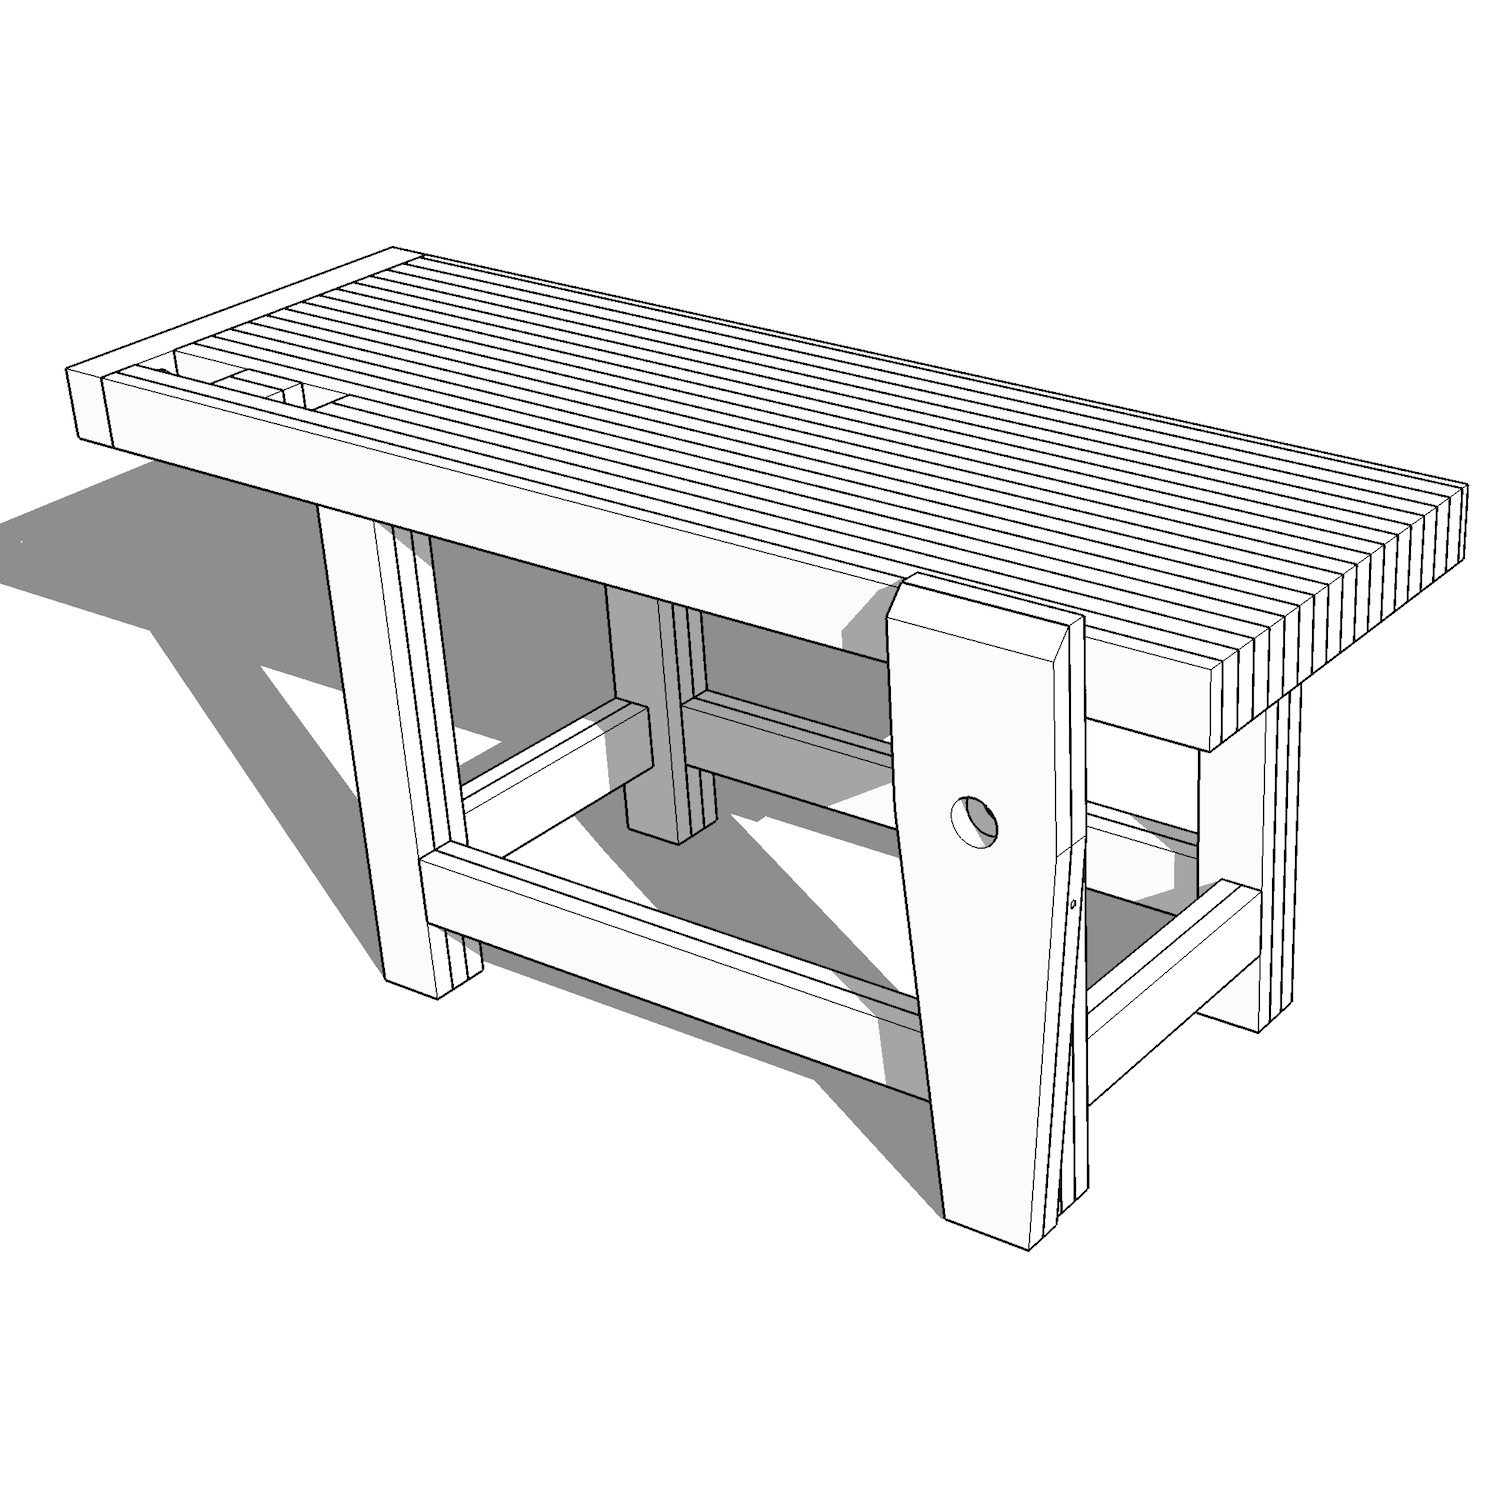 Roubo-Style Woodworking Workbench Plans — Crafted Workshop